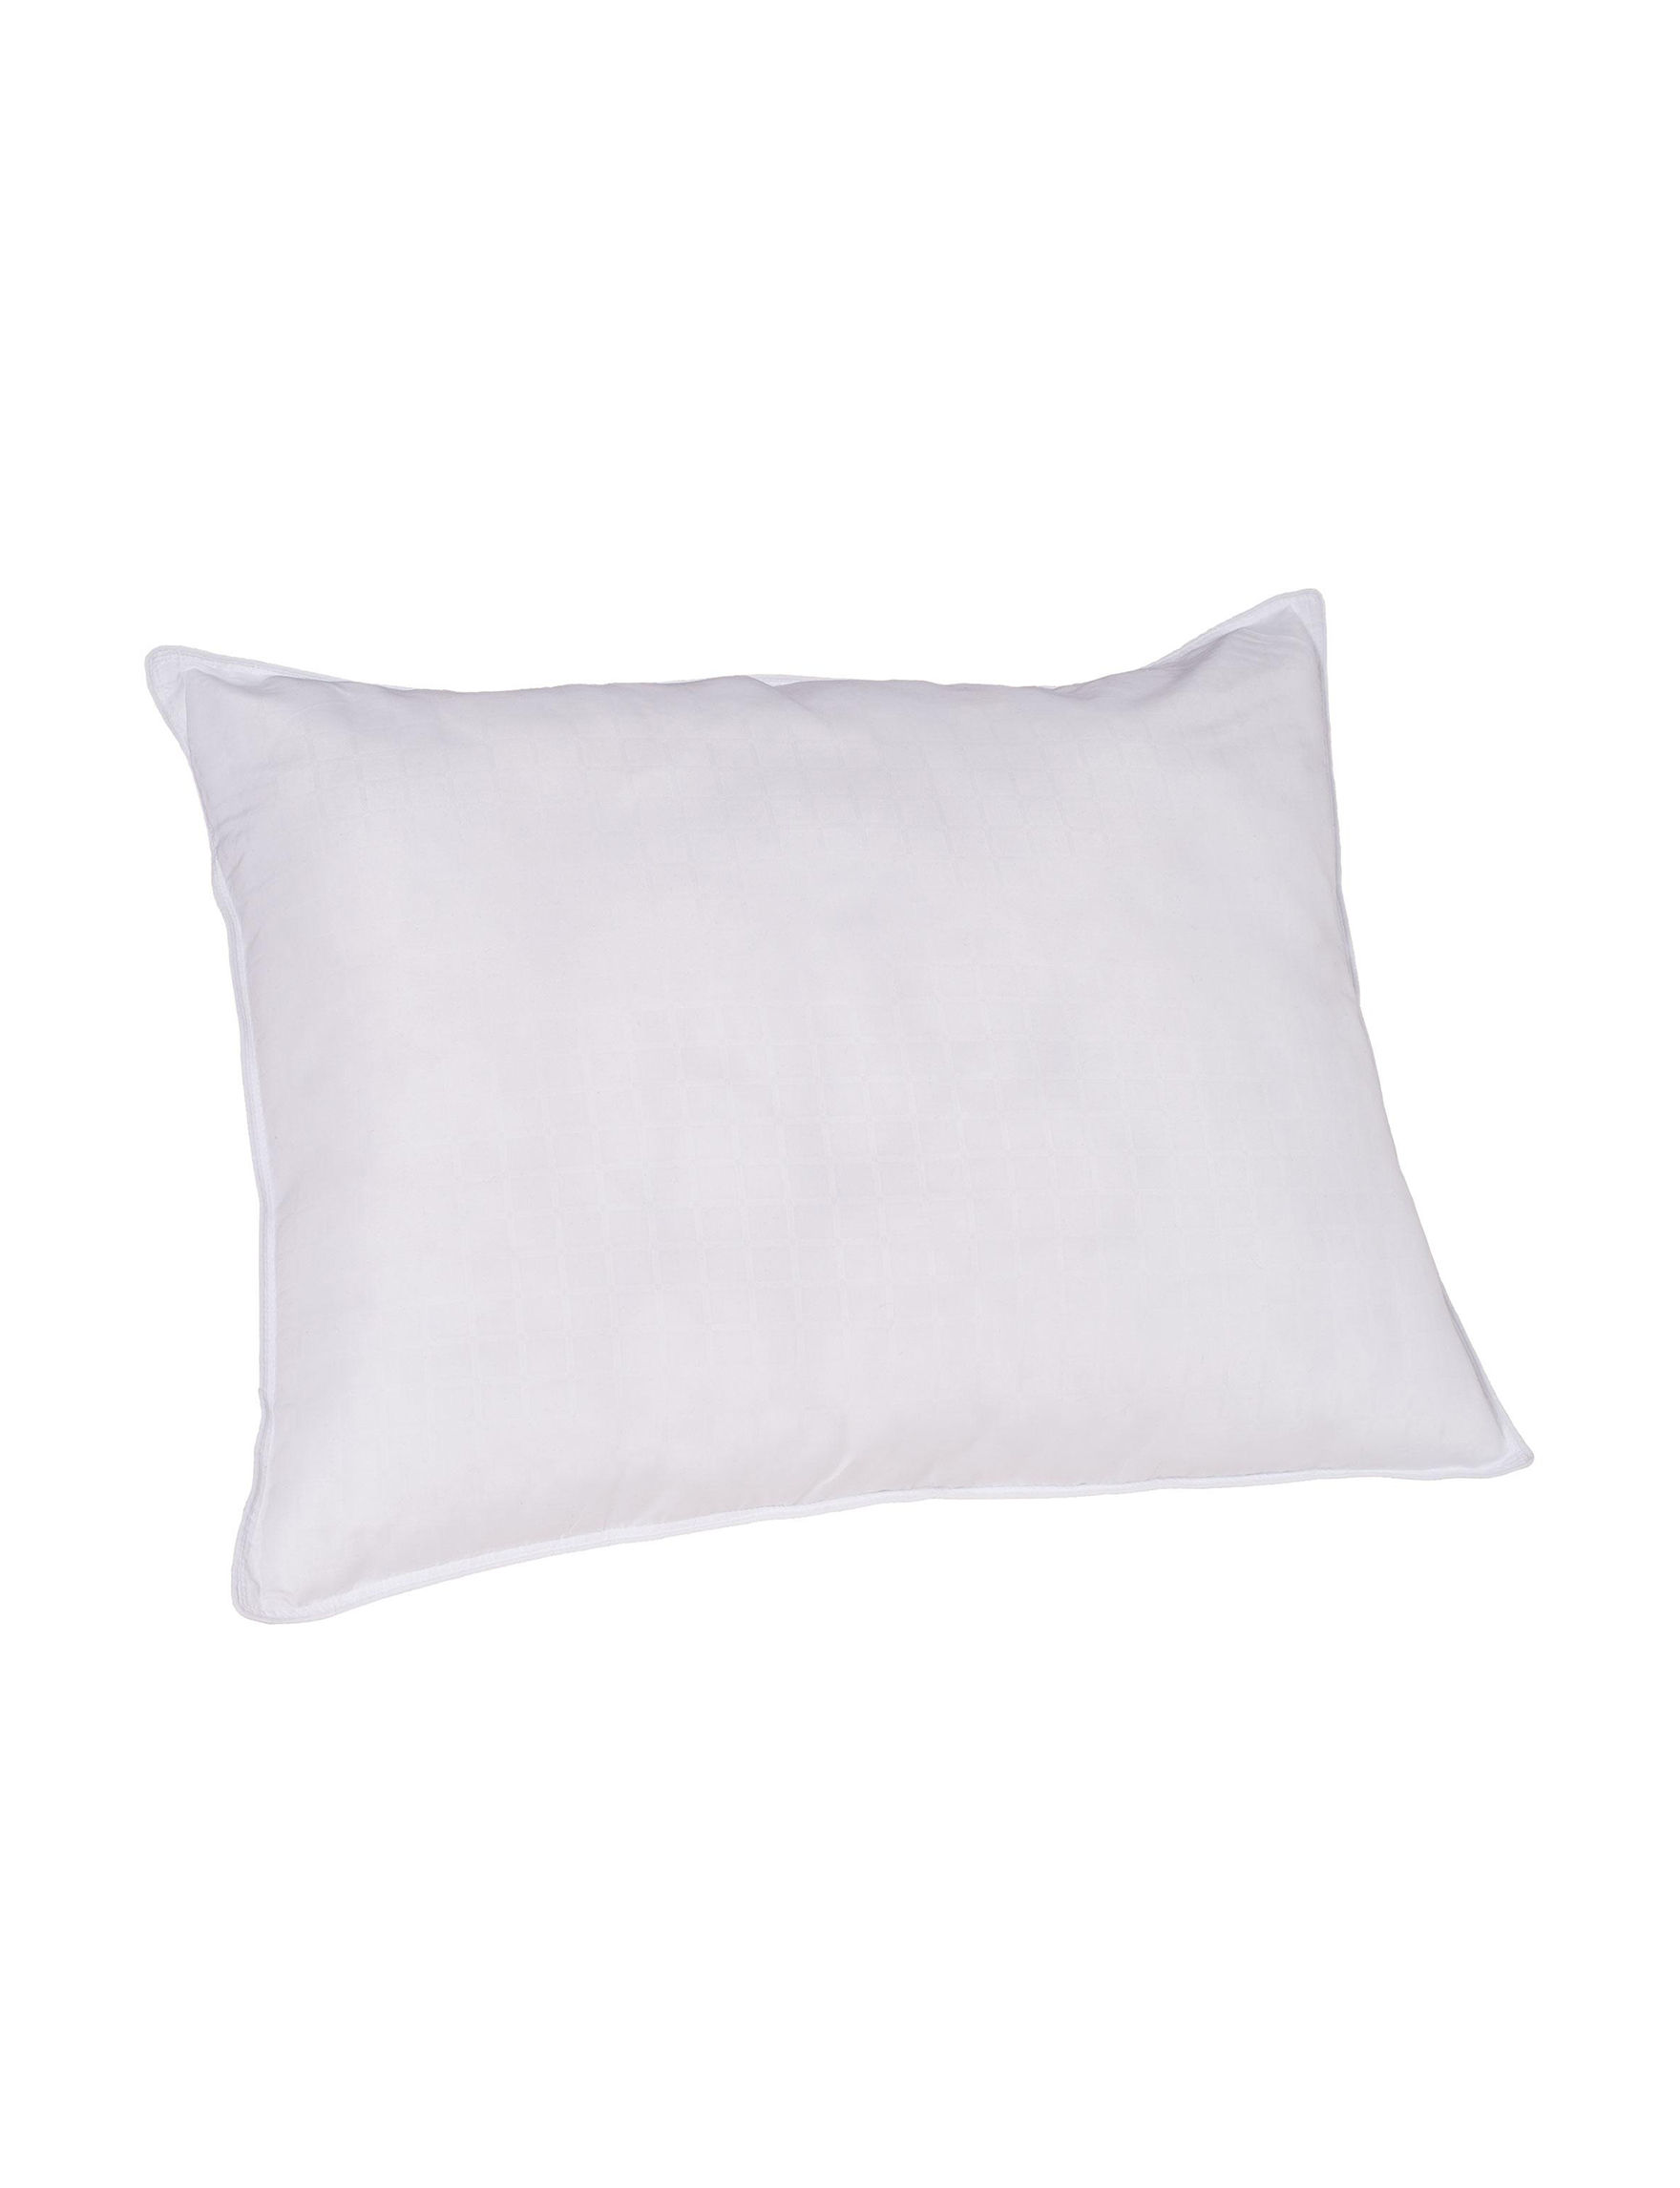 Lavish Home White Bed Pillows